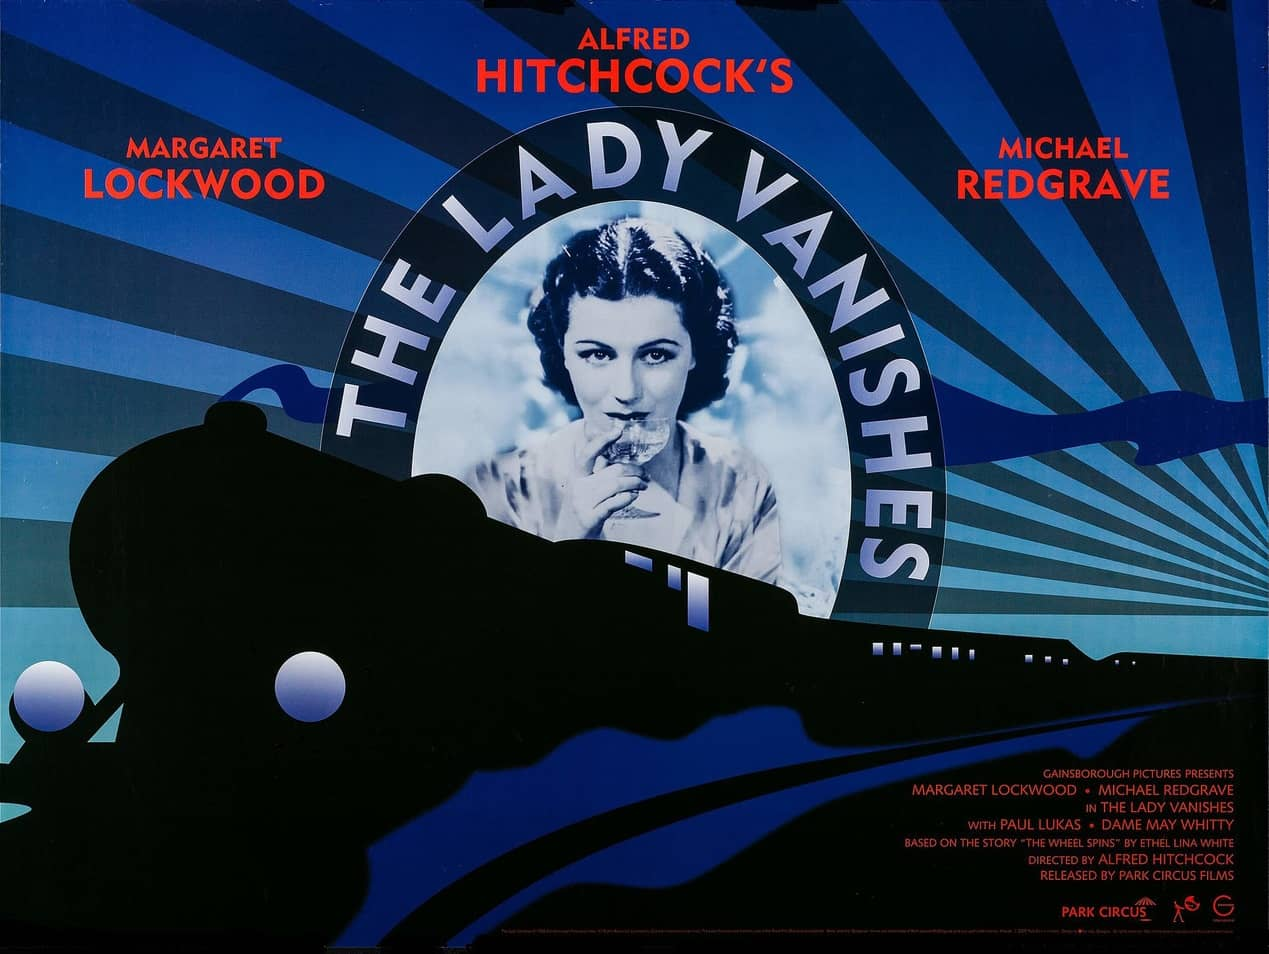 The Lady Vanishes (1938, dir. Alfred Hitchcock) UK 2008 re-release poster